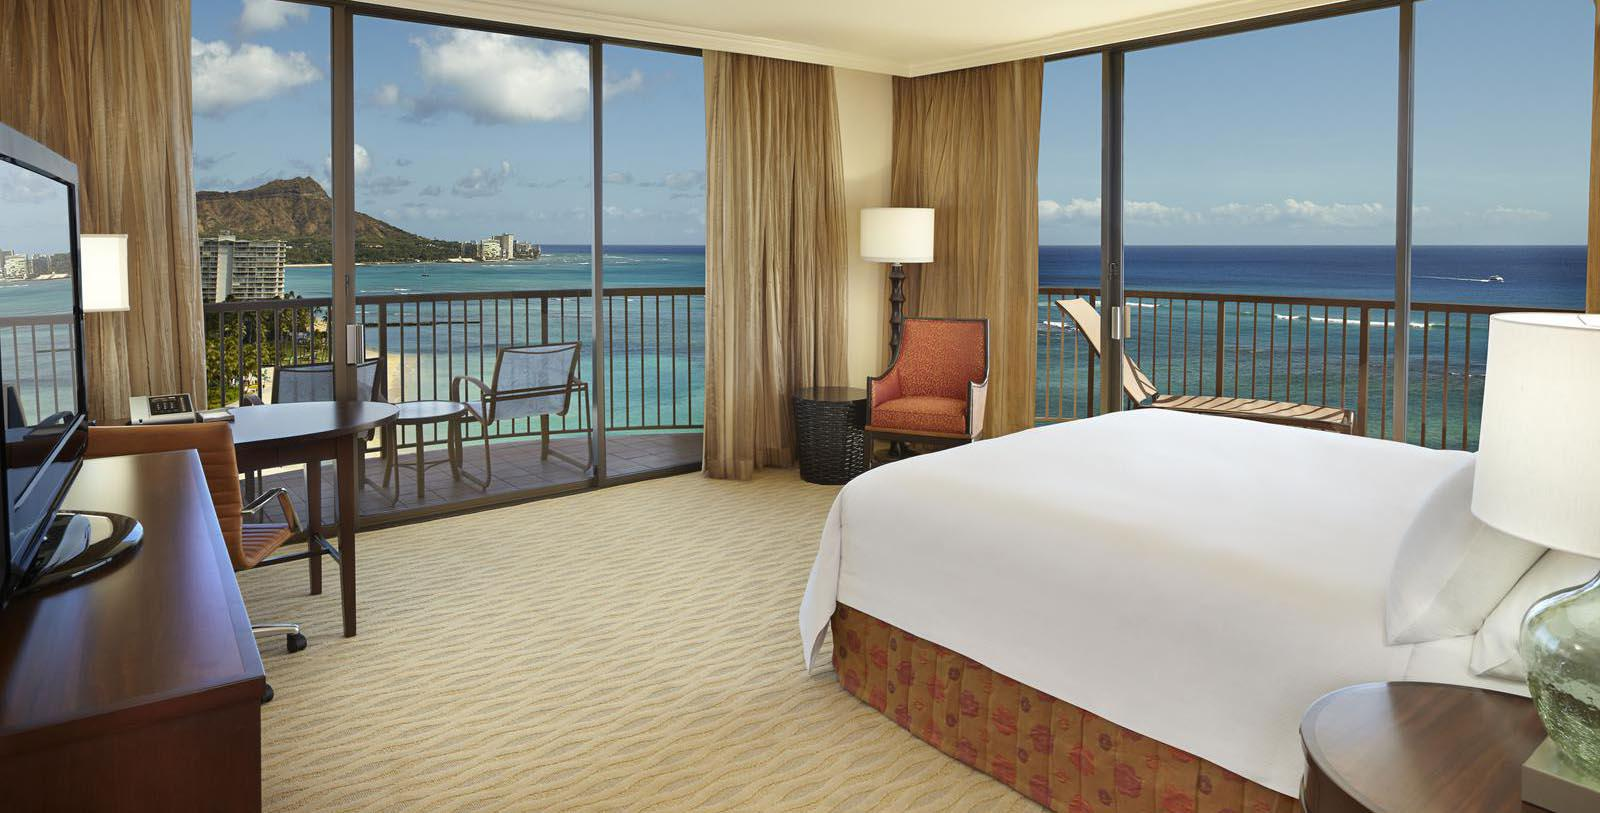 Image of guestroom Hilton Hawaiian Village® Waikiki Beach Resort, 1957, Member of Historic Hotels of America, in Honolulu, Hawaii, Accommodations